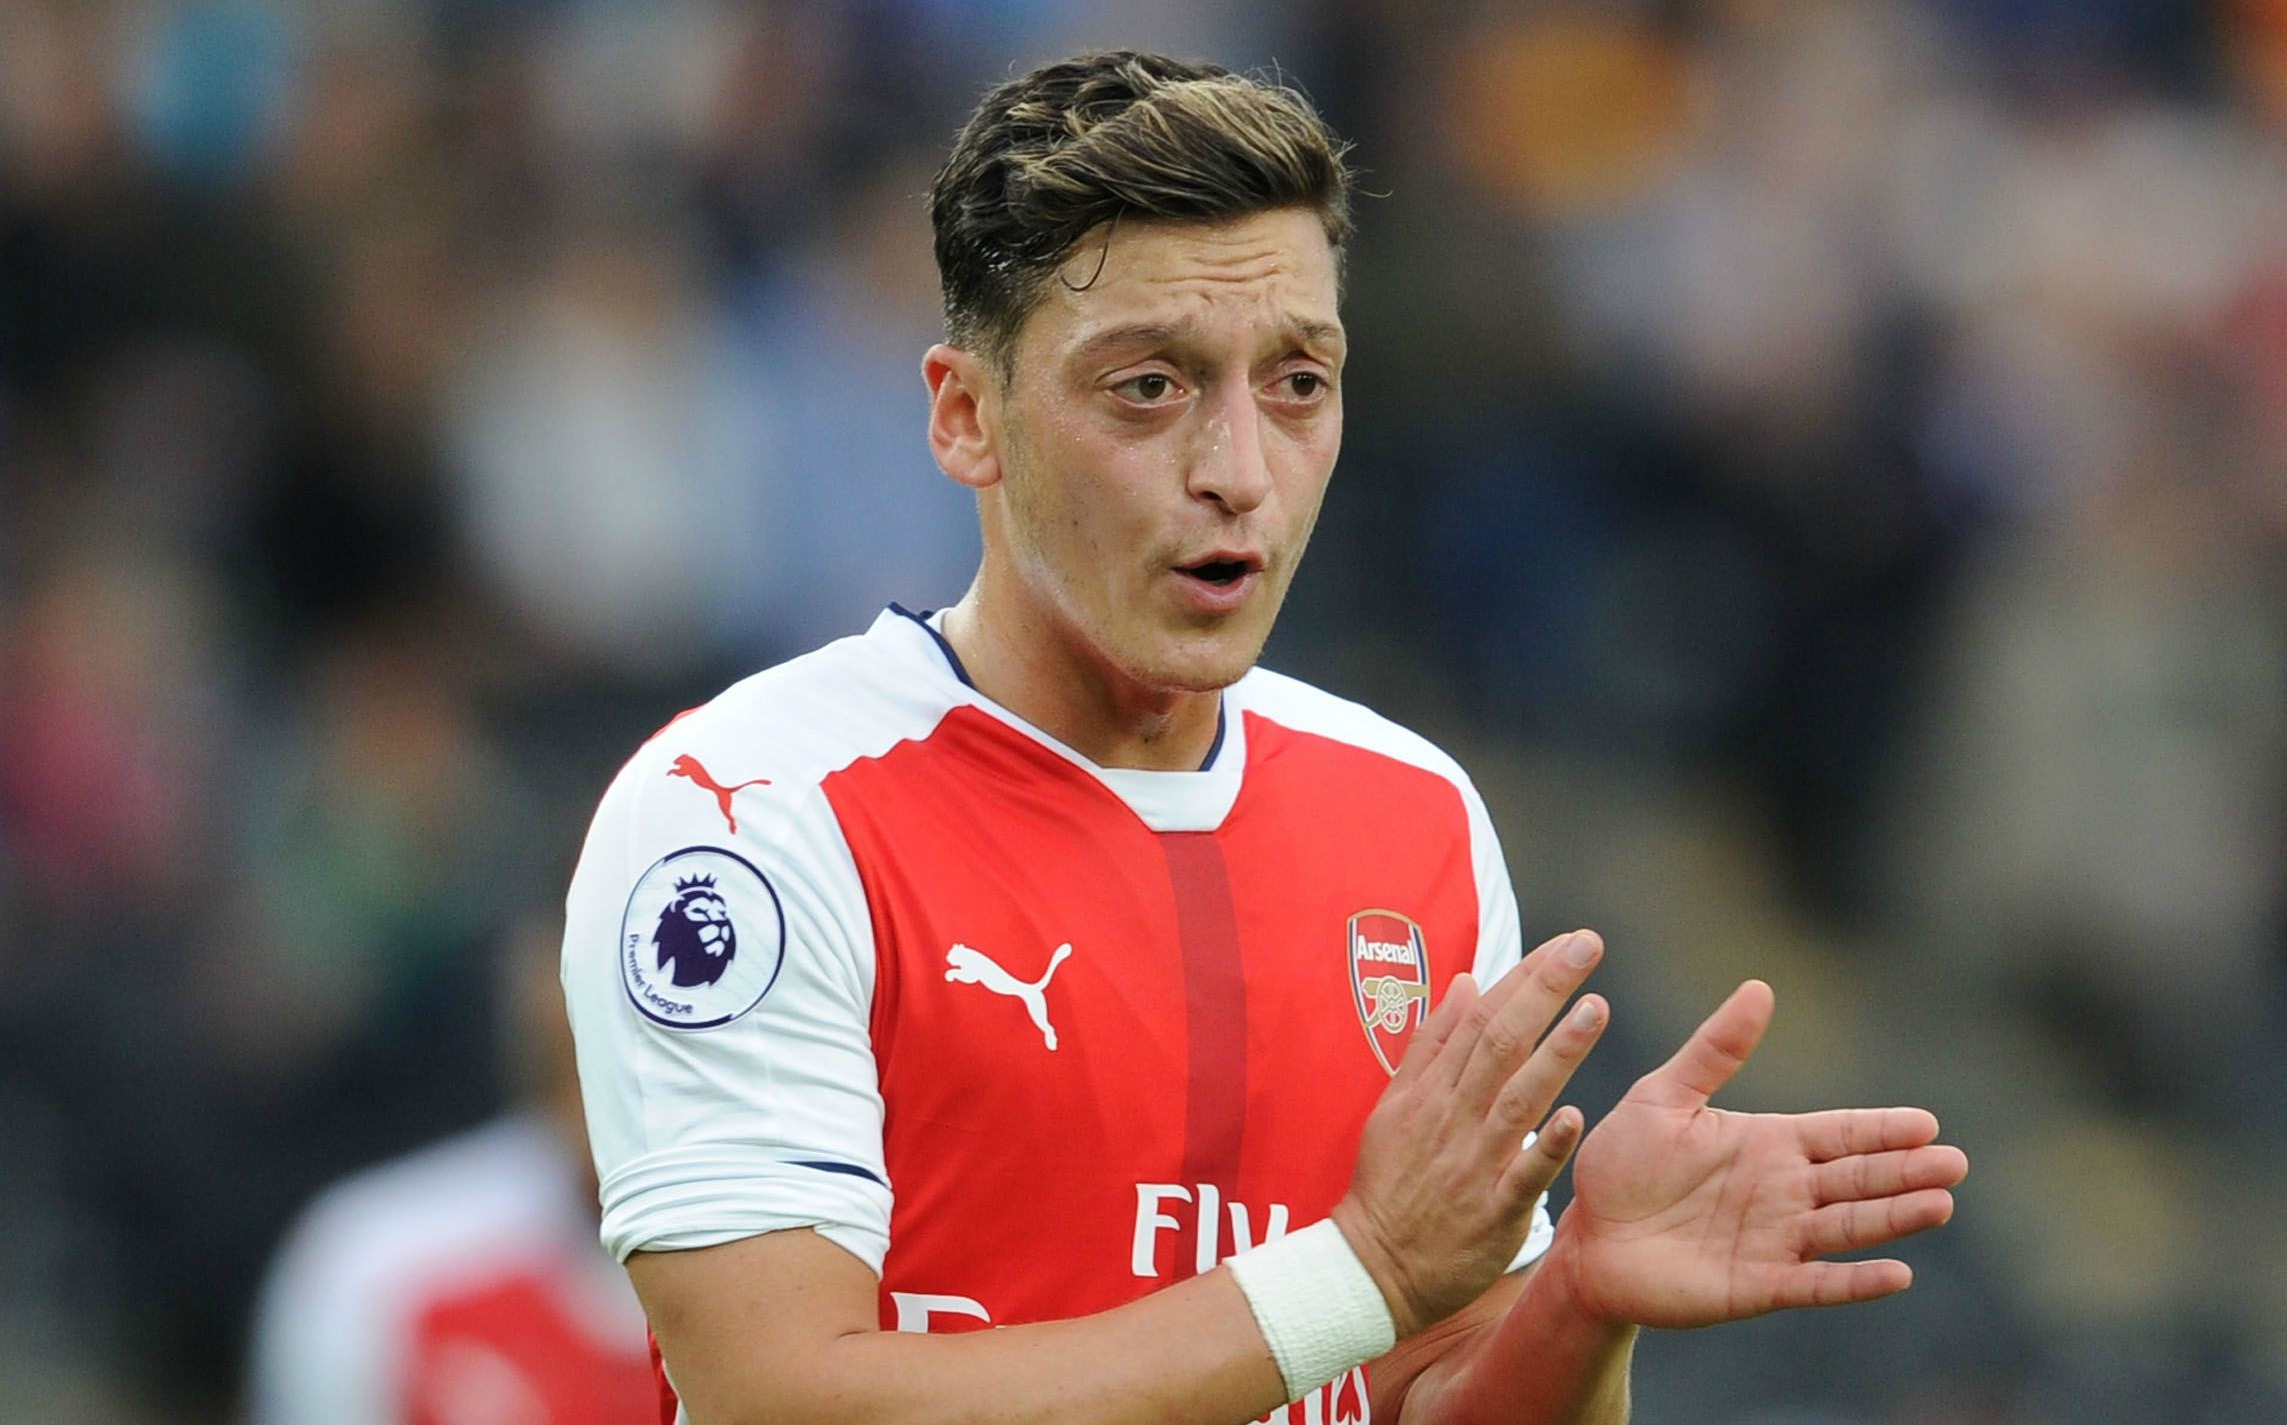 Arsenal star Mesut Ozil broke personal record for most passes (104) in Premier League match against Hull